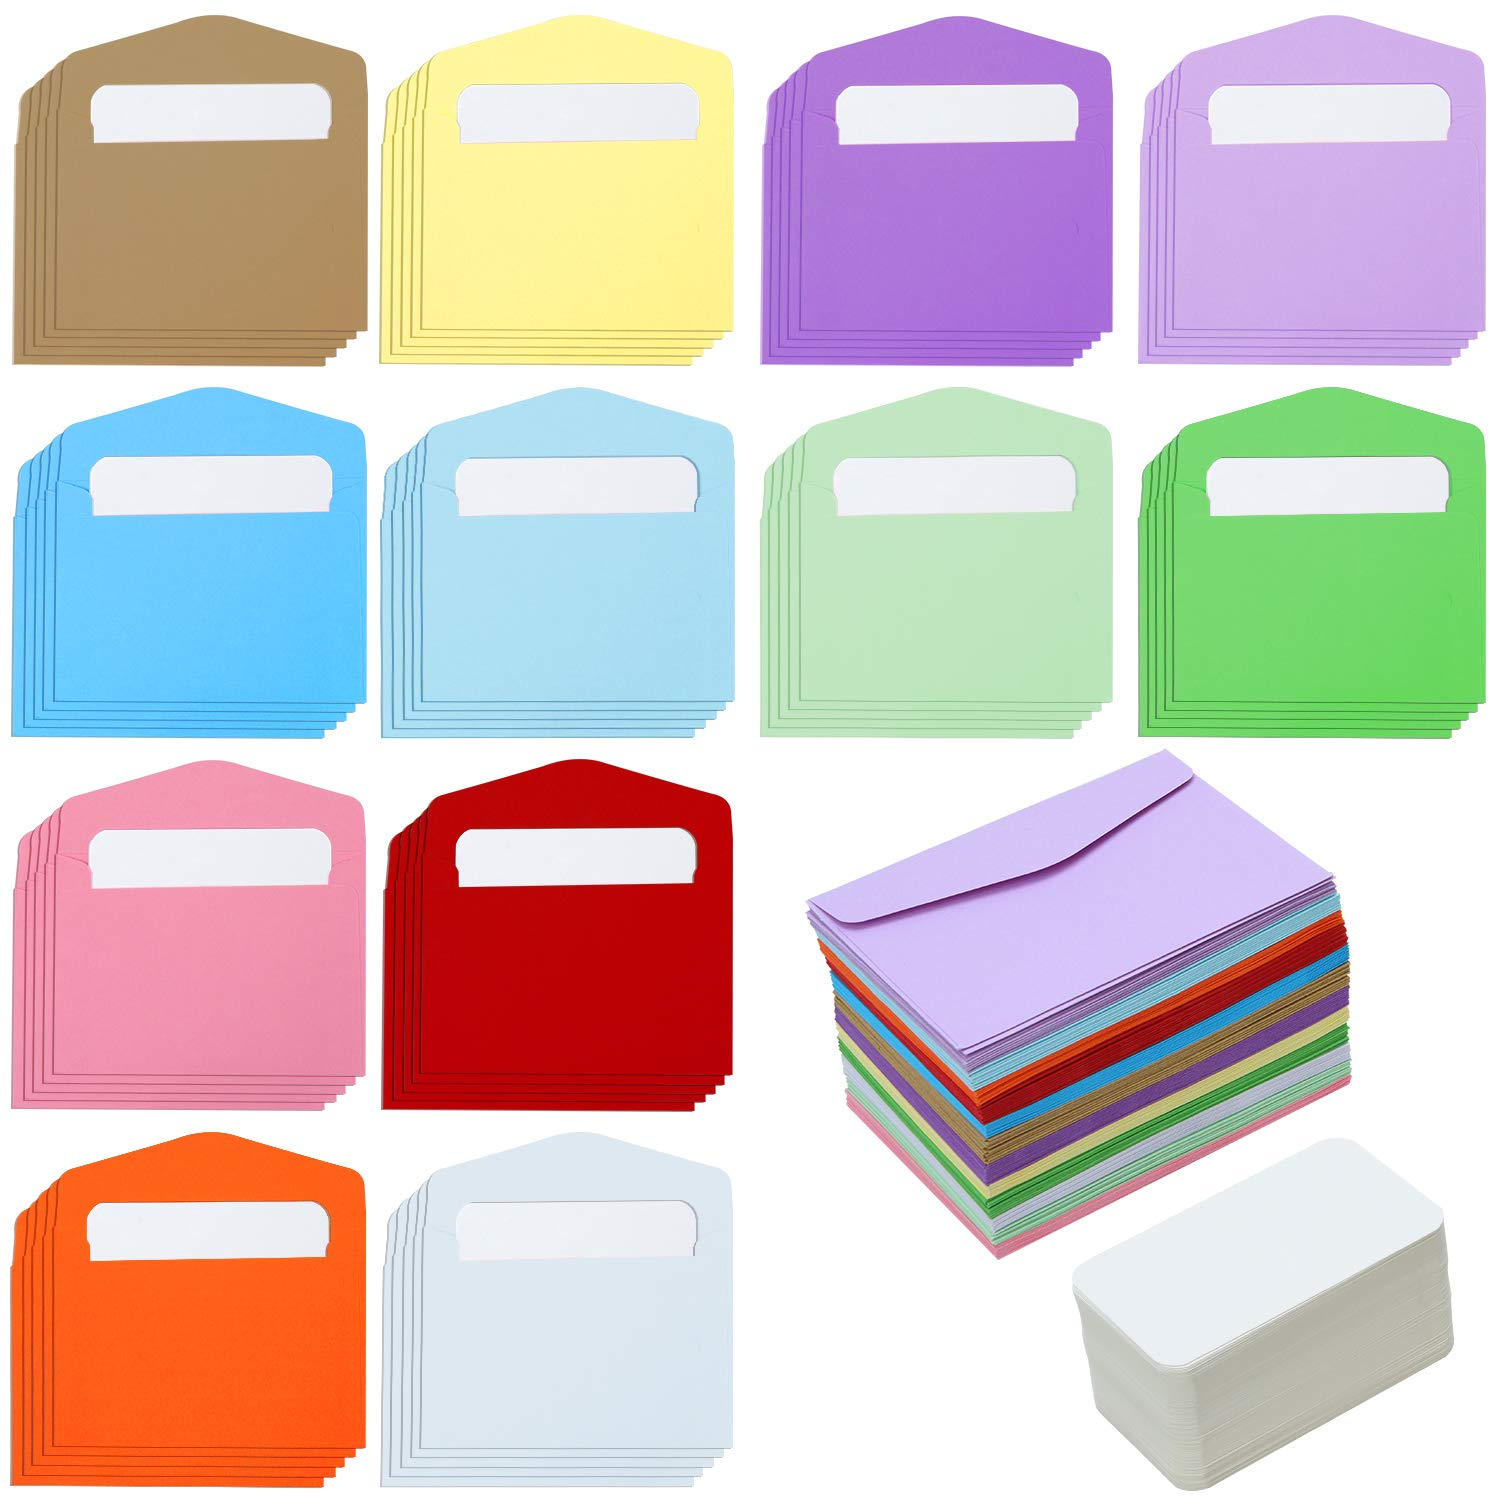 Elcoho 120 Pack Mini Envelopes with 120 Pieces White Blank Business Cards Colorful Mini Envelopes Pocket Gift Card for Christmas, Thanksgiving, Wedding, Birthday Party Supplies (Mixed Colour)